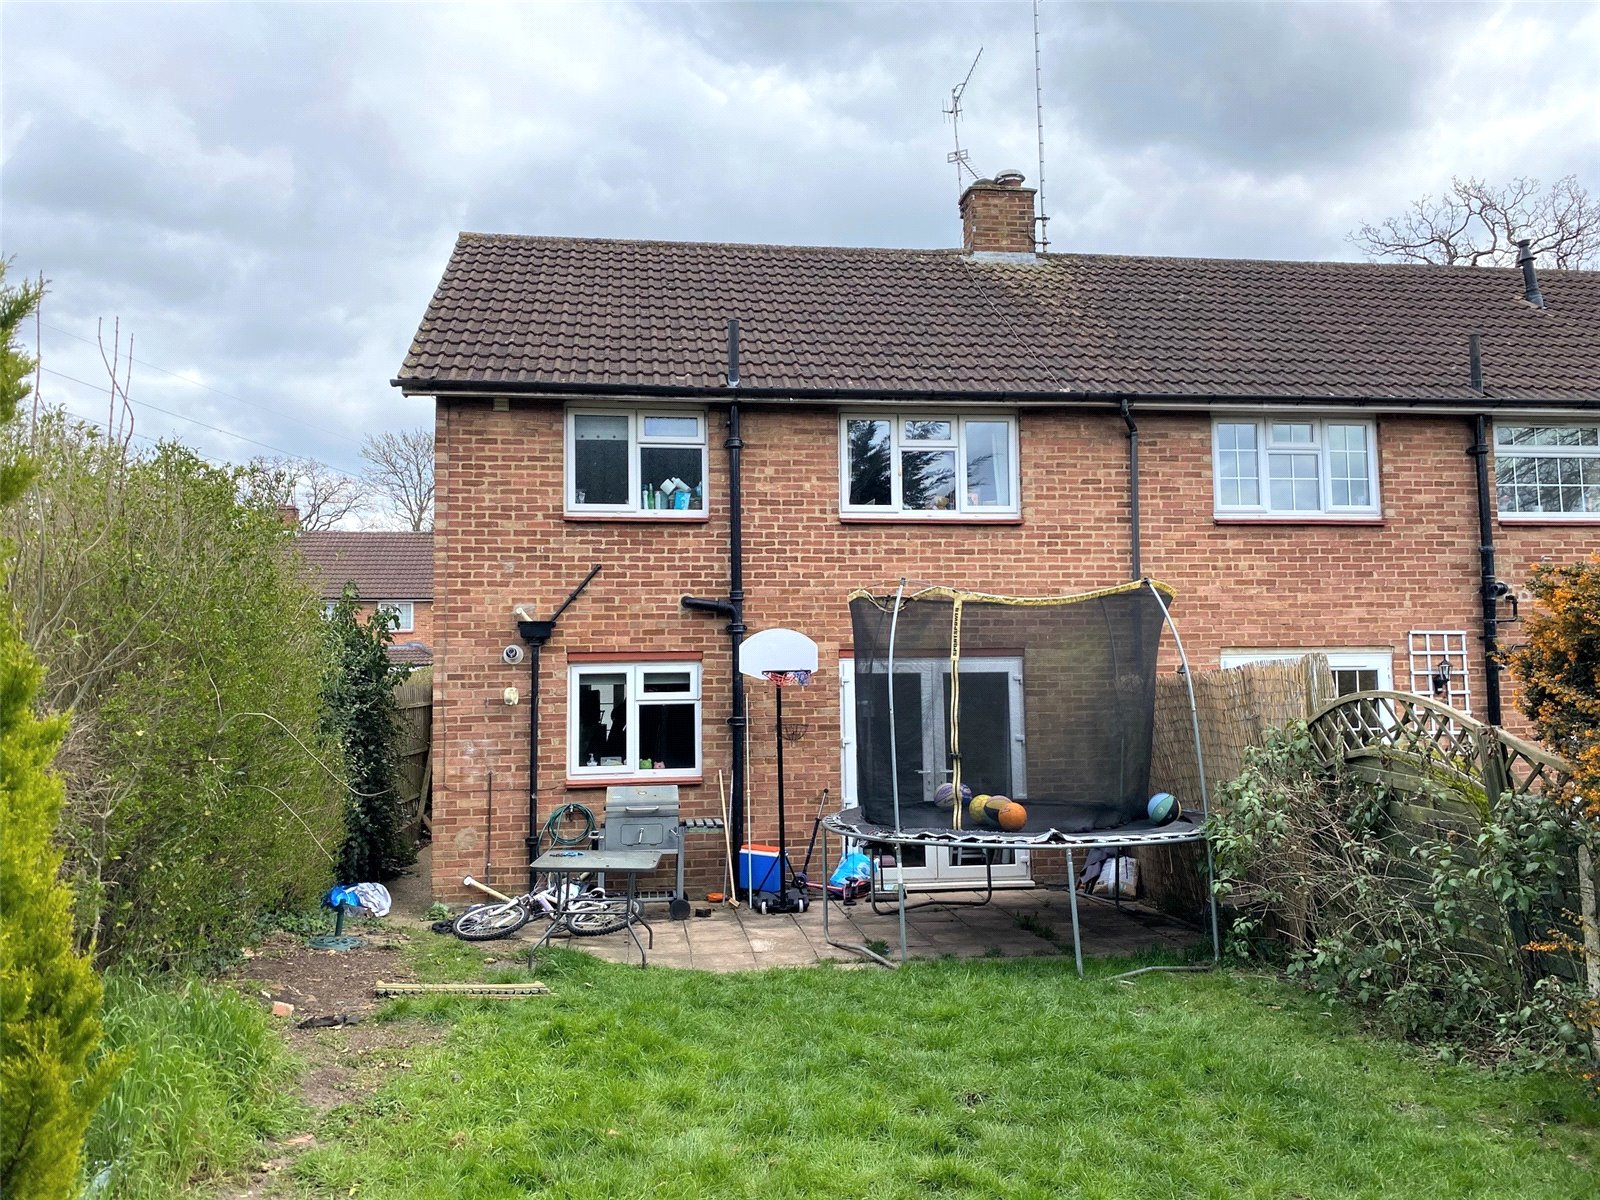 3 bed house to rent in Bricket Wood, AL2 3NB  - Property Image 10